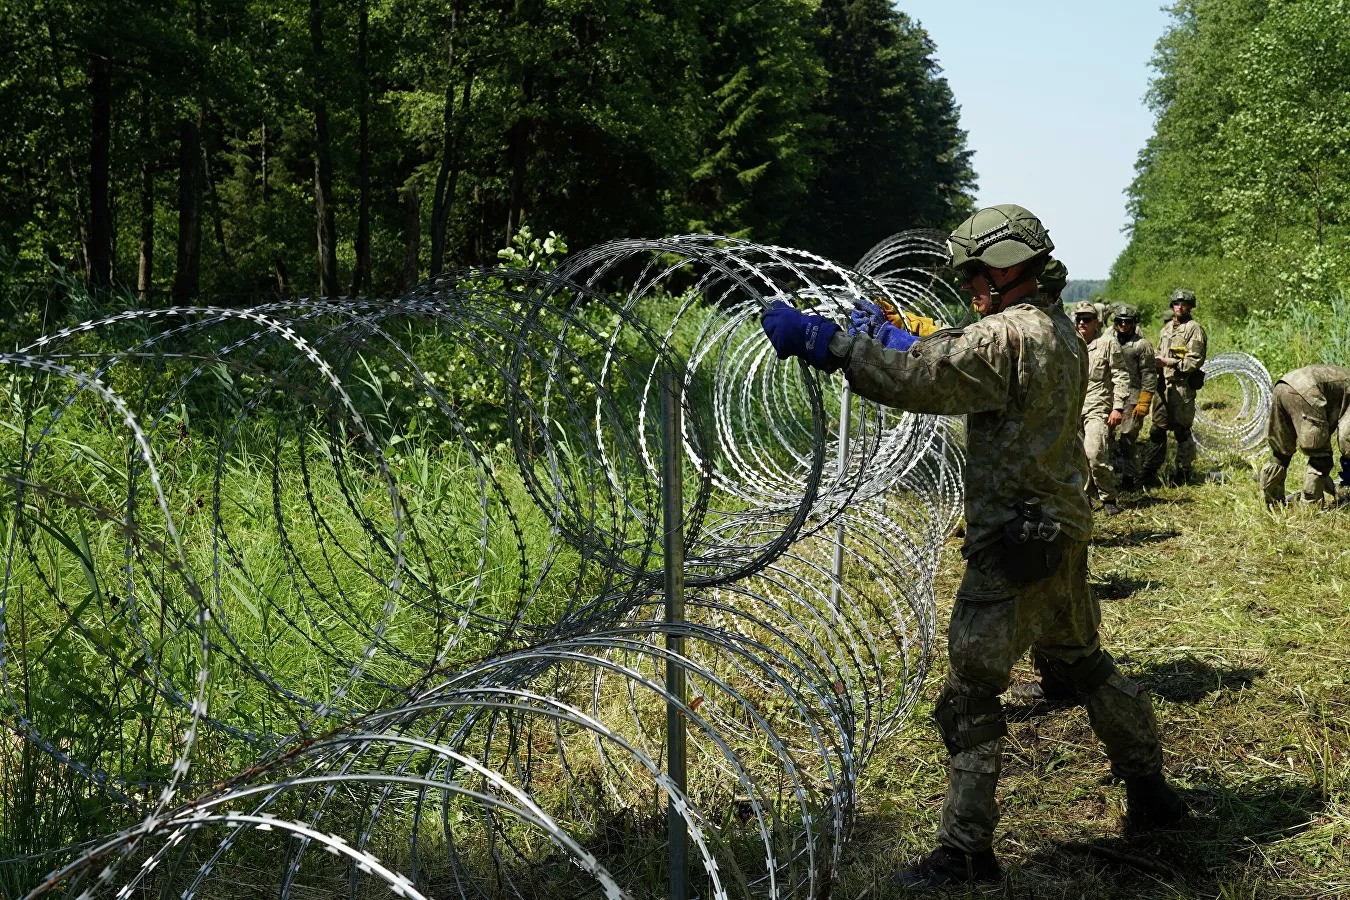 """Lithuania Concludes Its Subject To """"Hybrid Aggression"""" Deploys Military To Protect Its Border"""